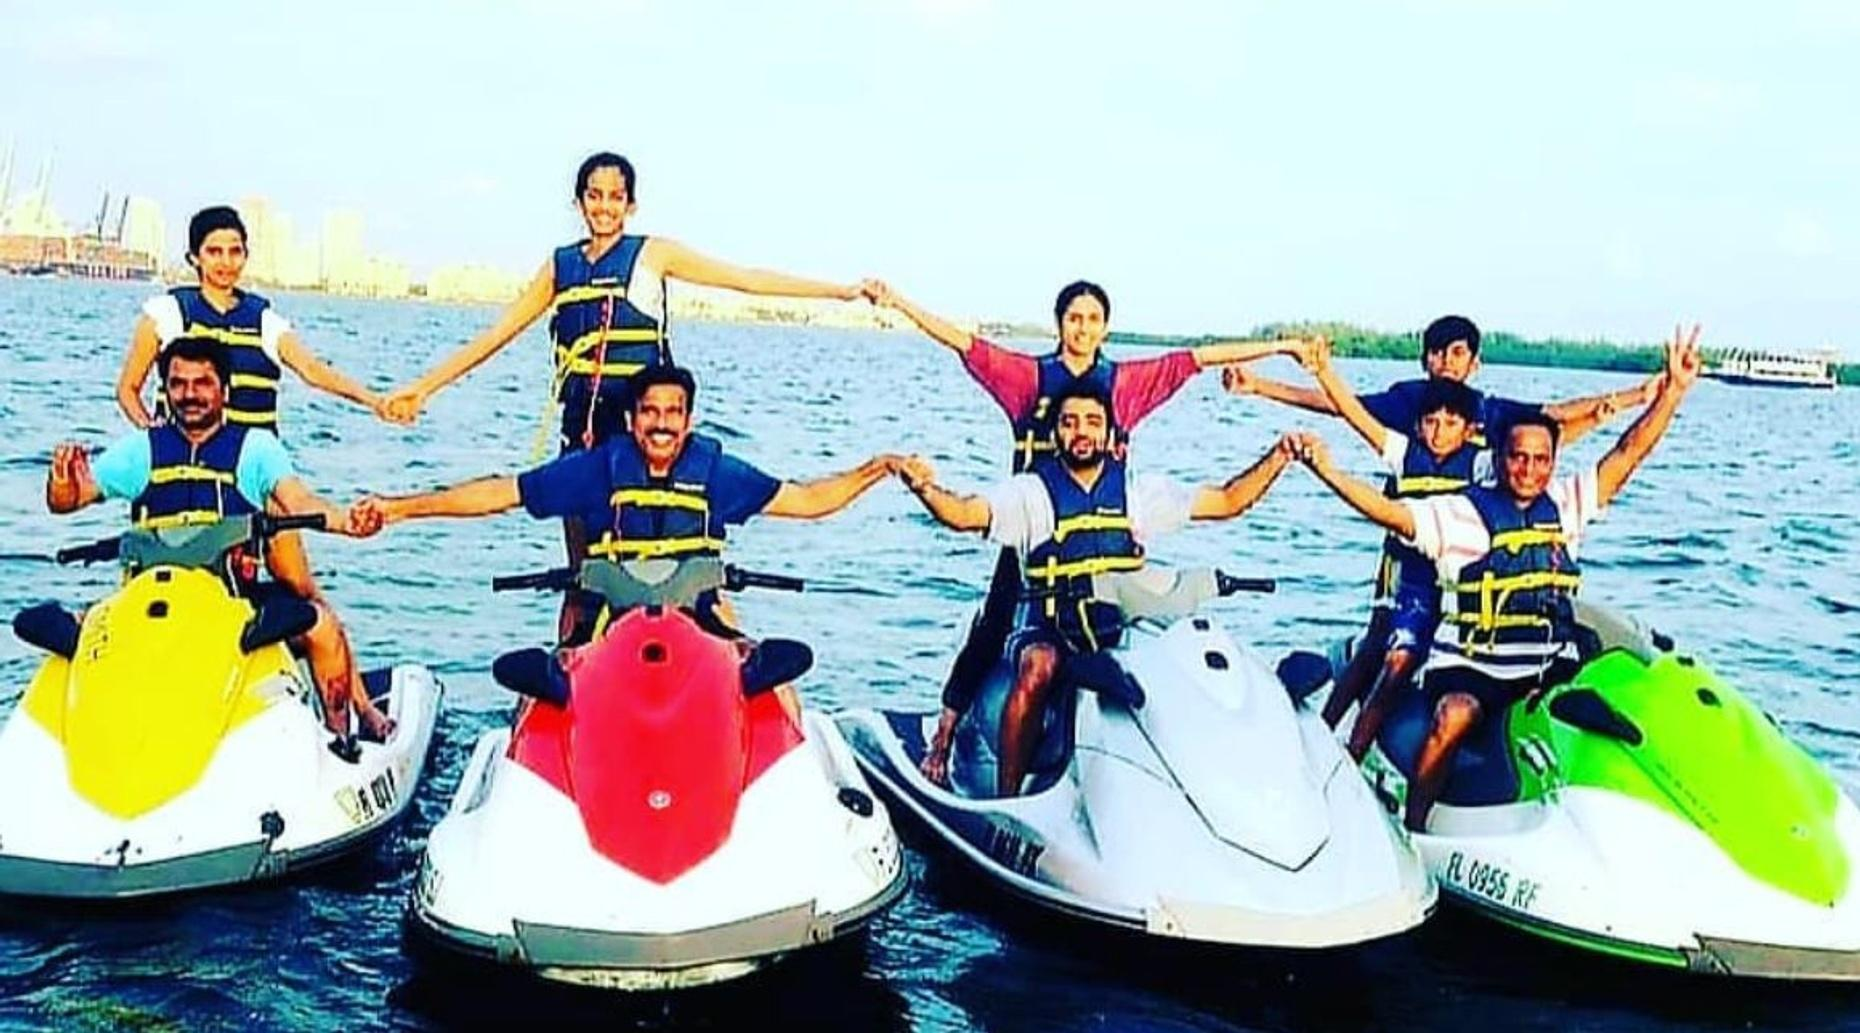 3-Hour Boat & Water Adventure Package in Miami